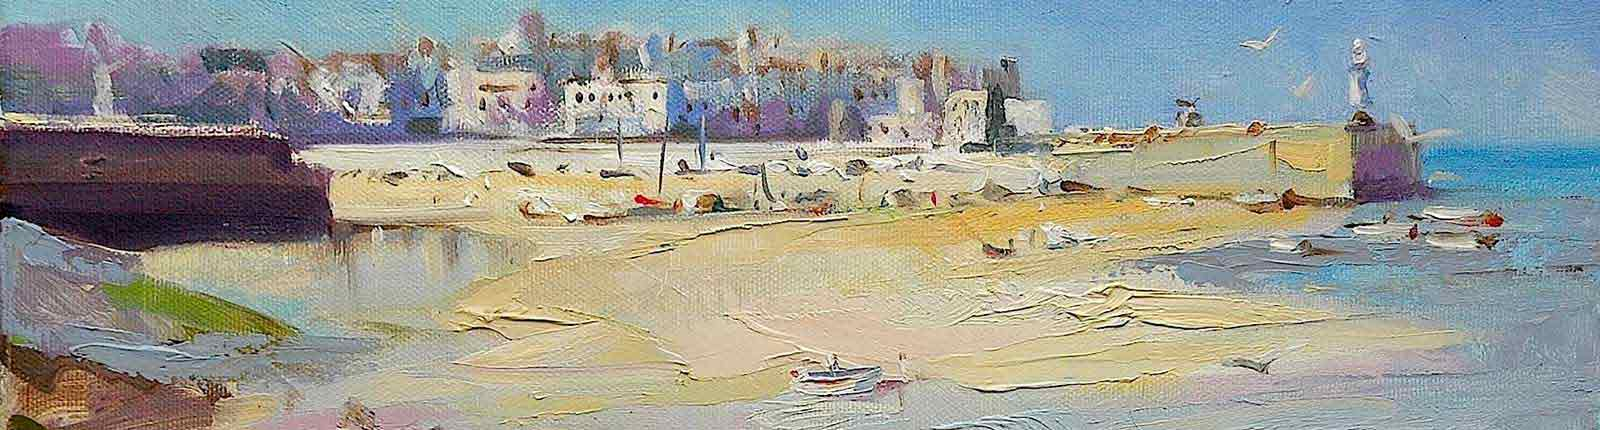 Painting of Cornwall by fine art painter Trevor Waugh